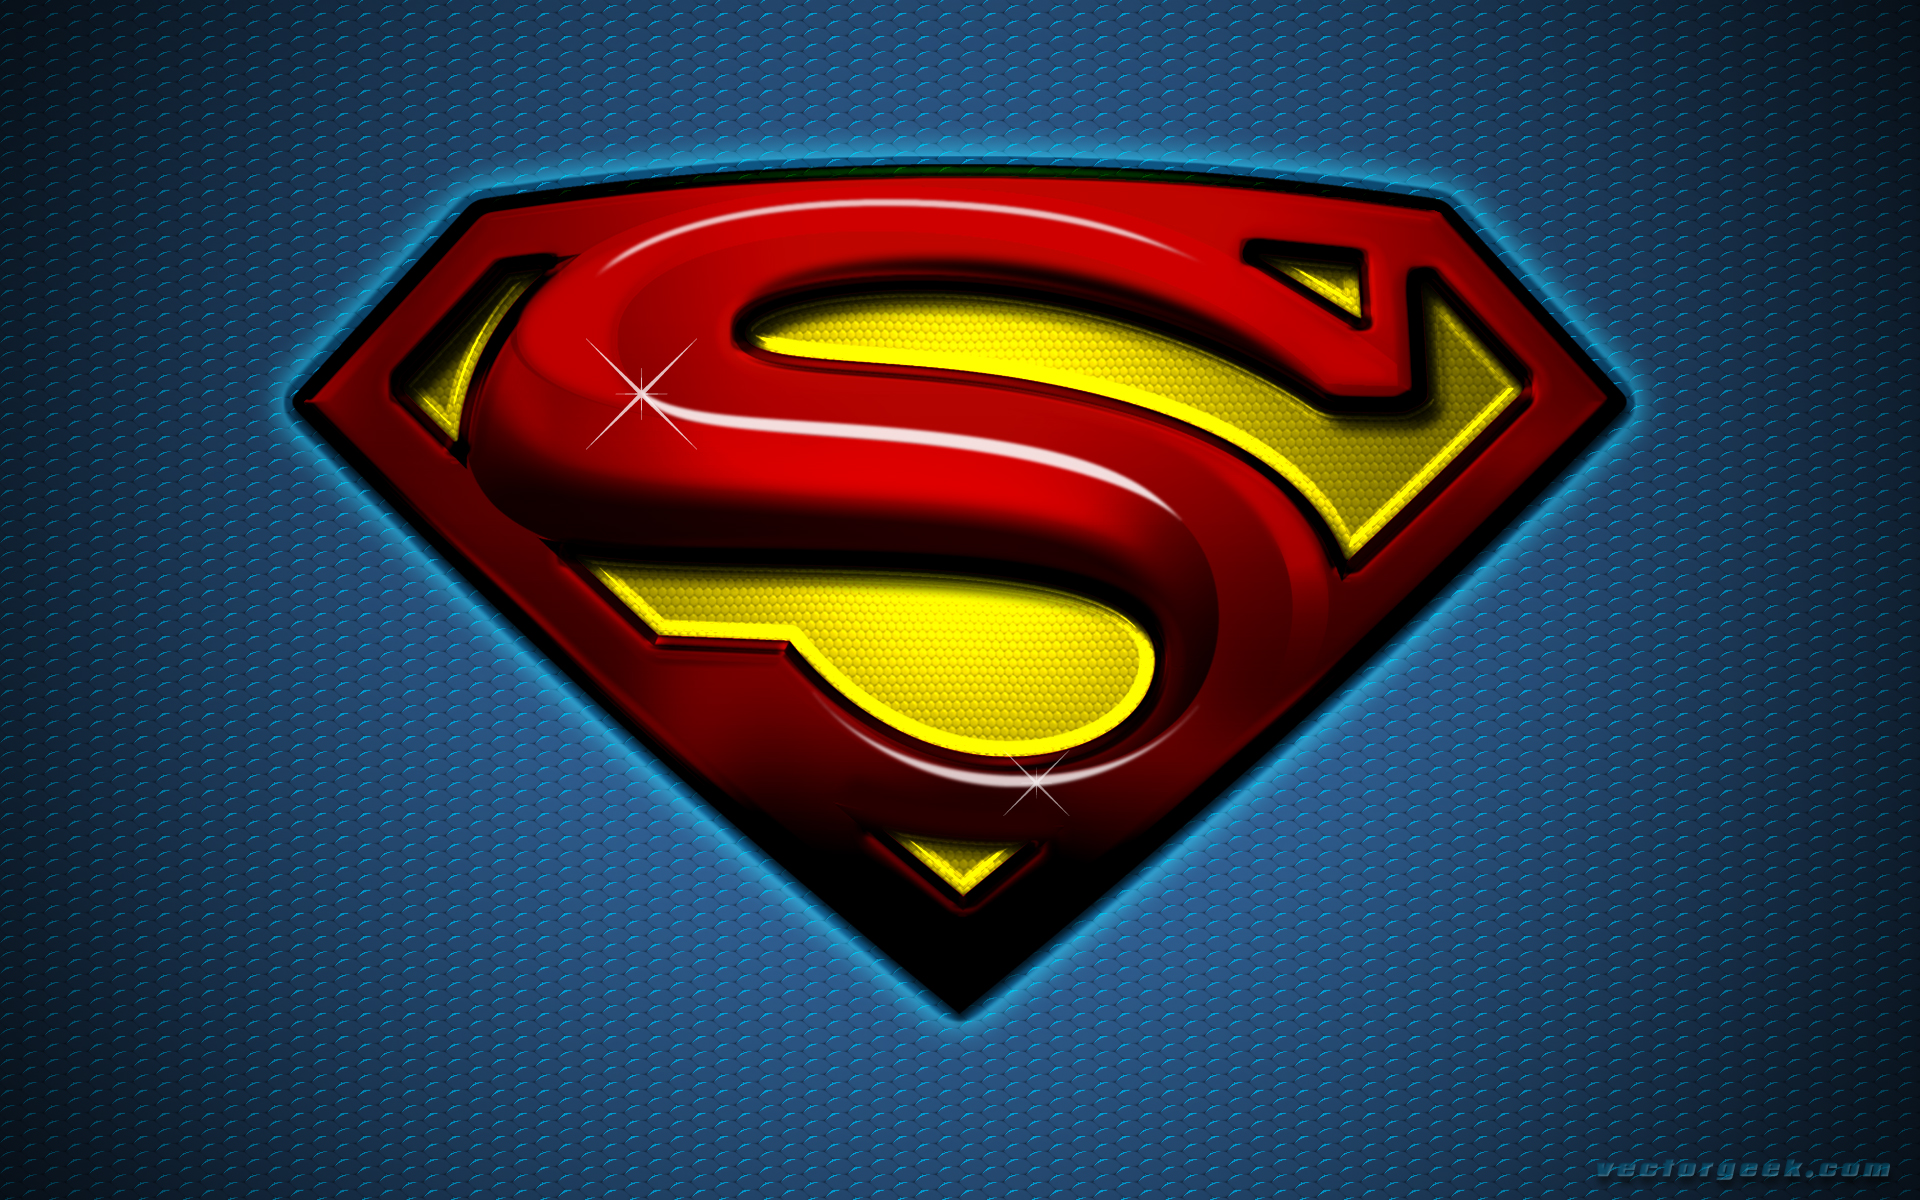 Get VG Superman wallpaper by vectorgeek [1920x1200] for your 1920x1200